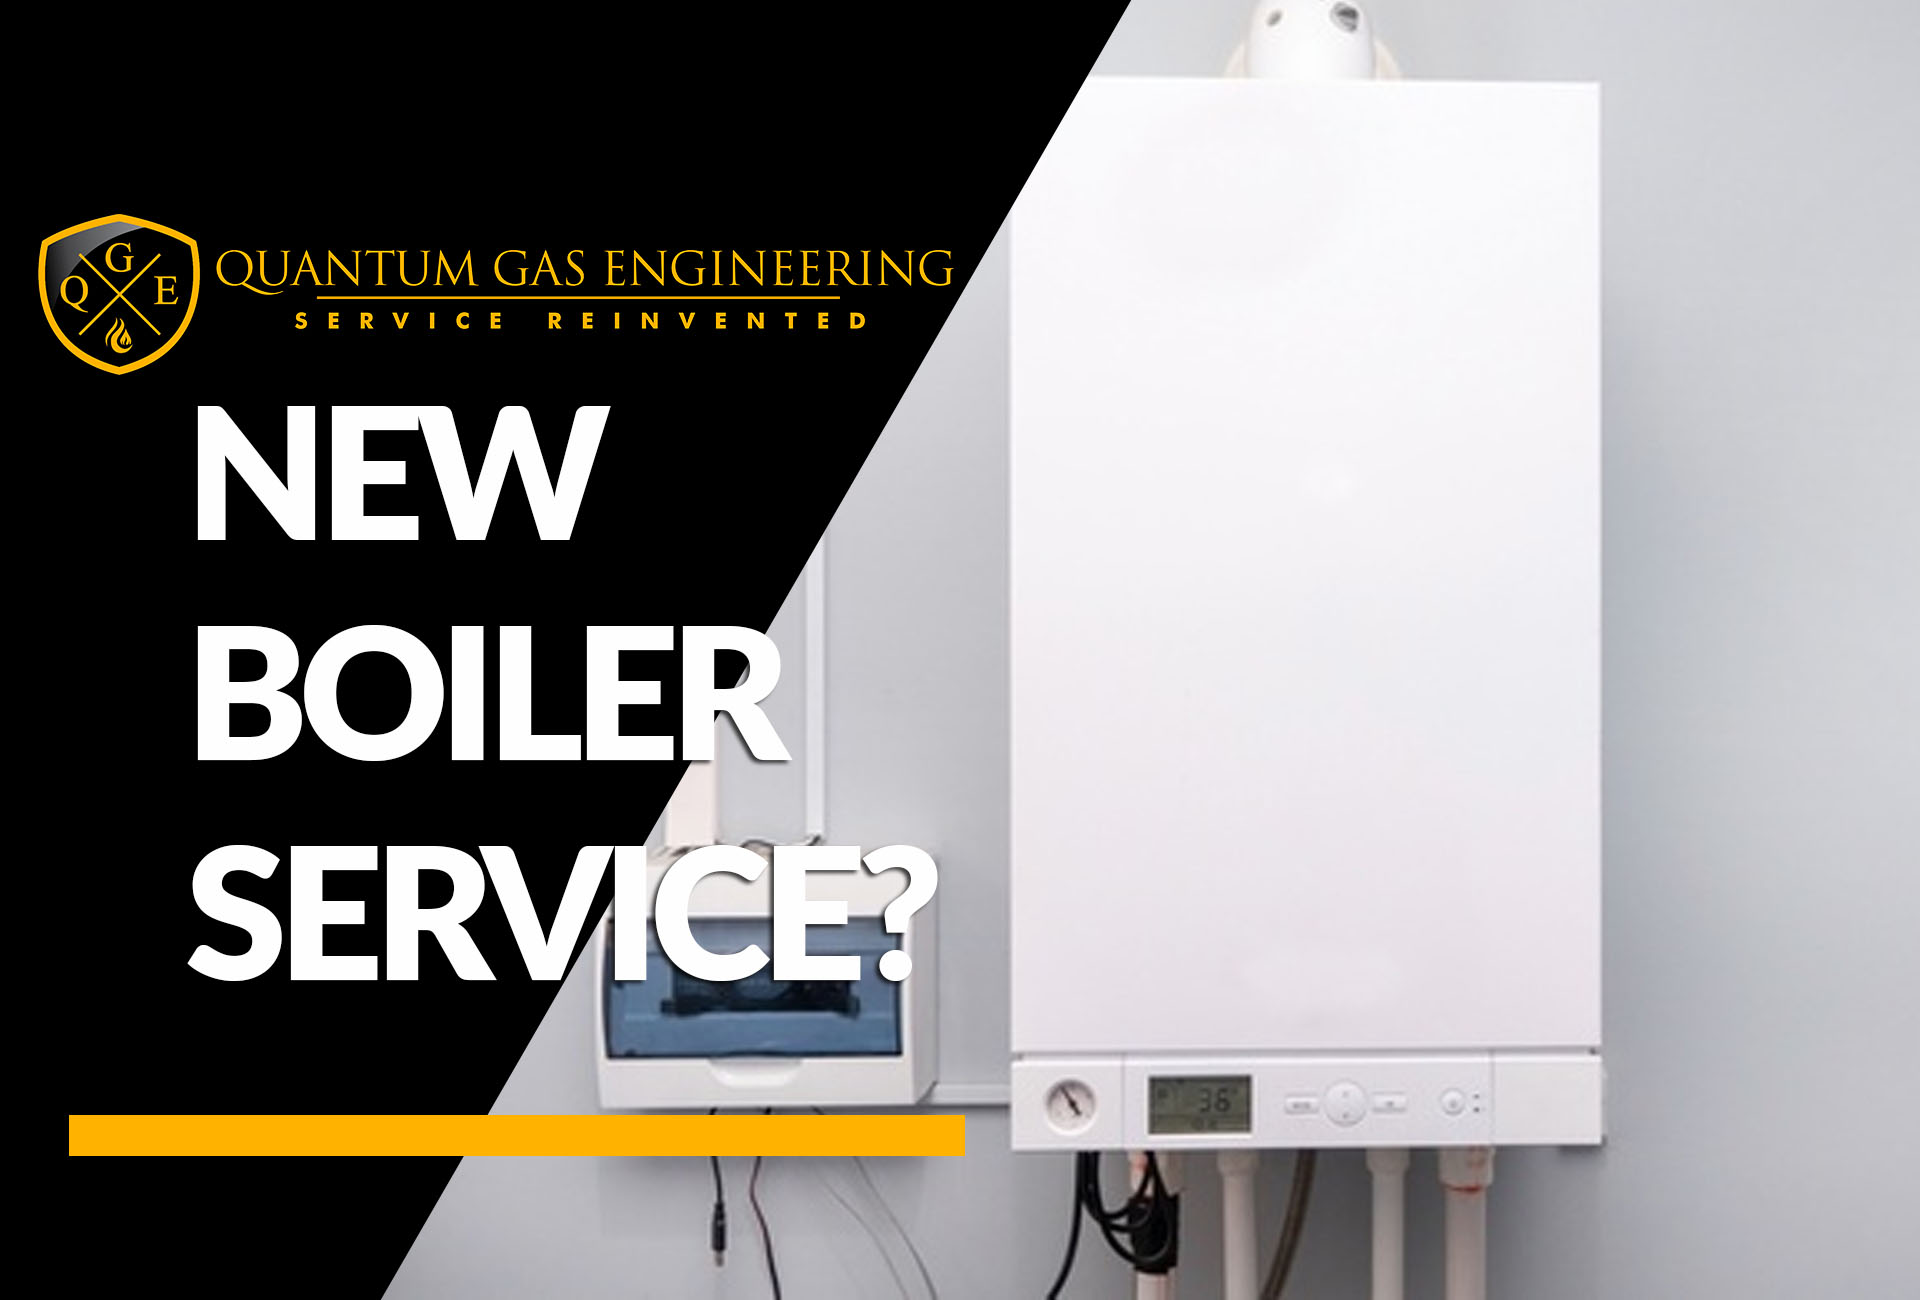 need a new boiler service?